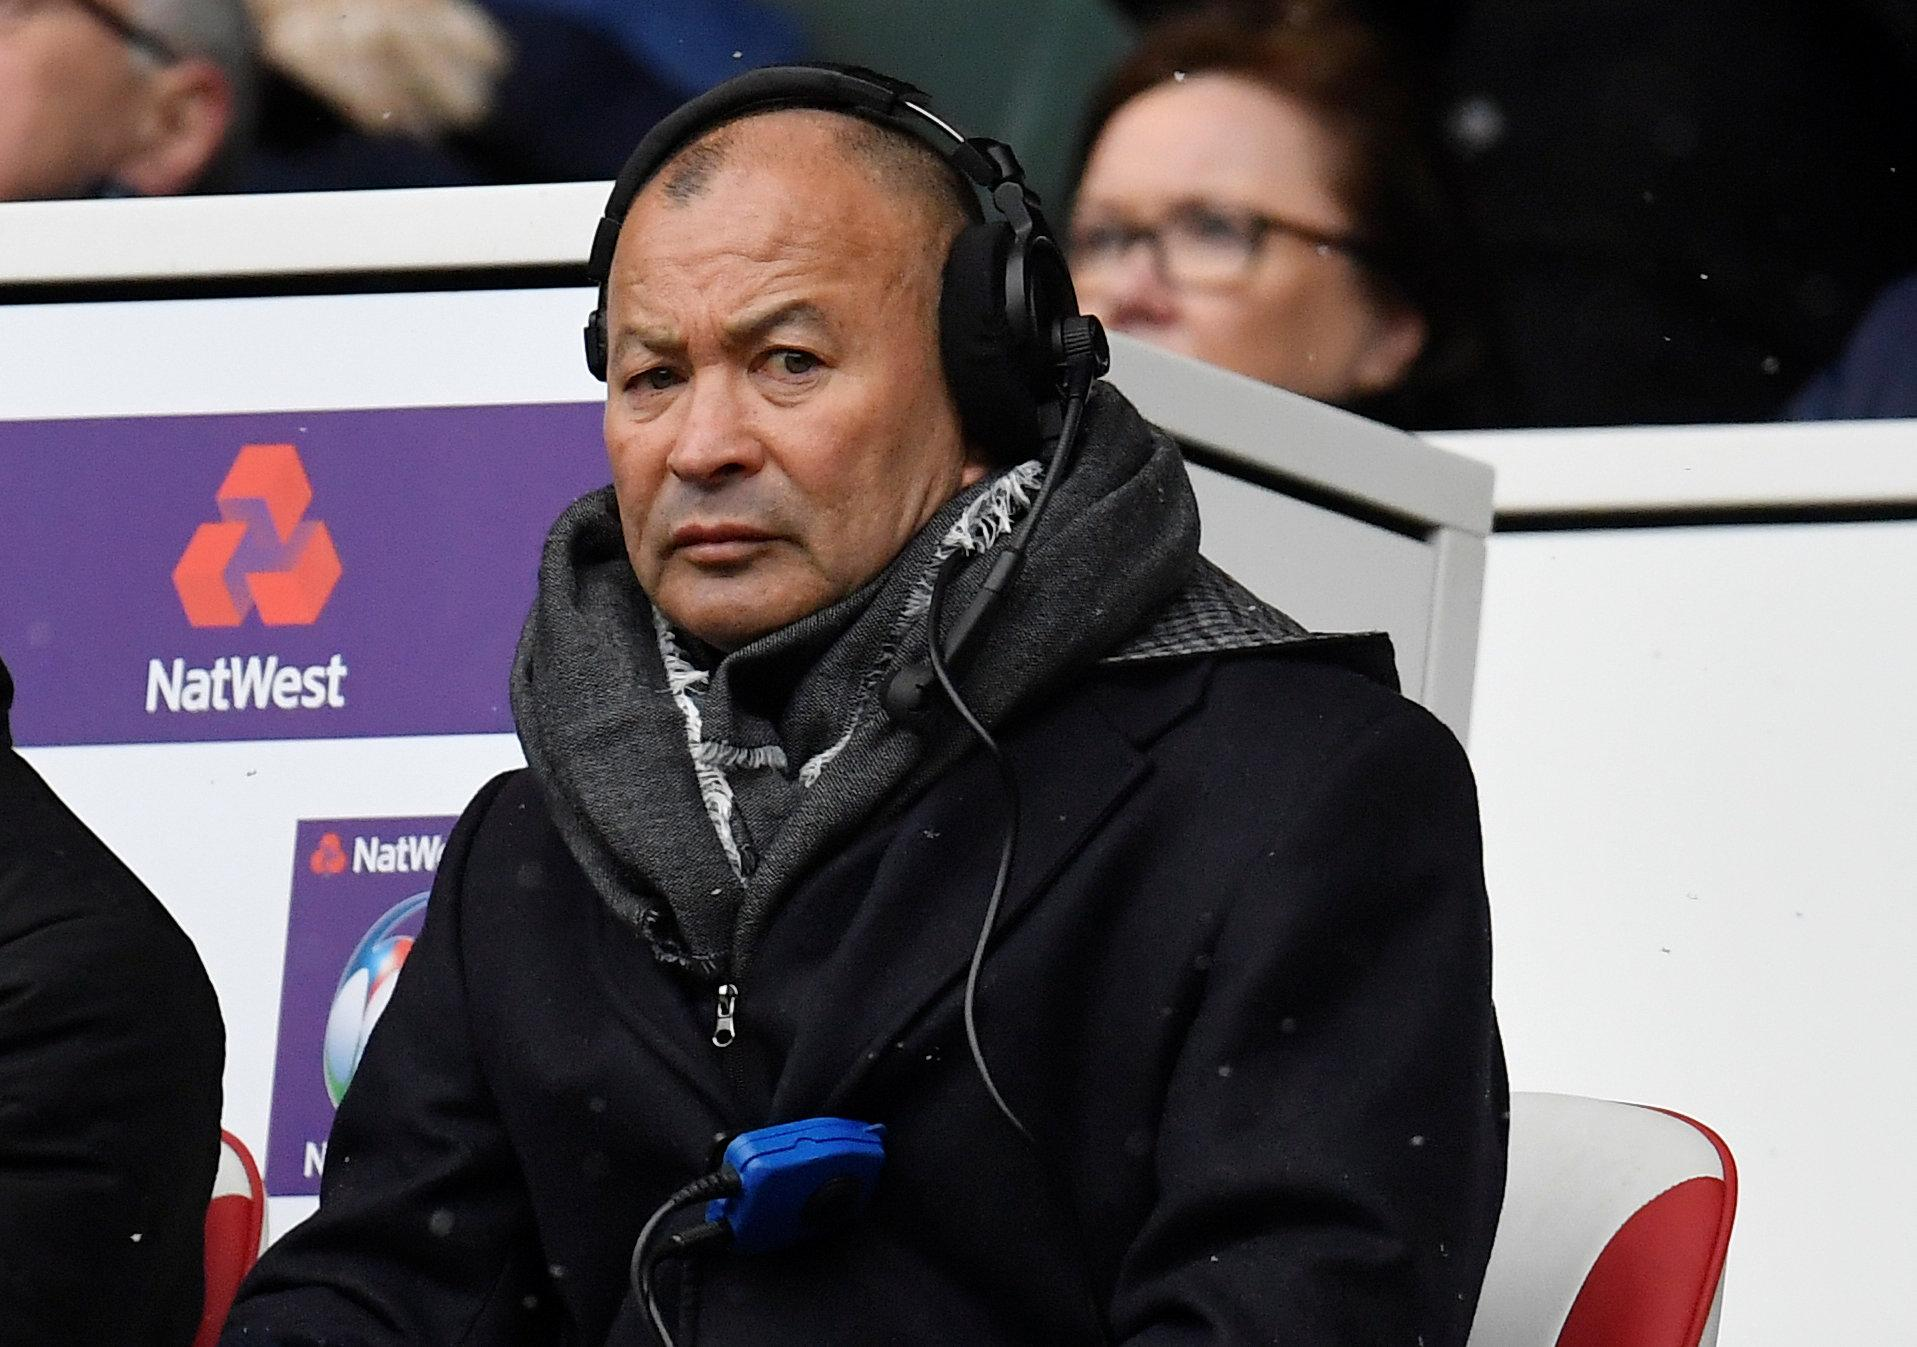 Eddie Jones' side finished fifth in the Six Nations after defeats against Scotland, France and Ireland